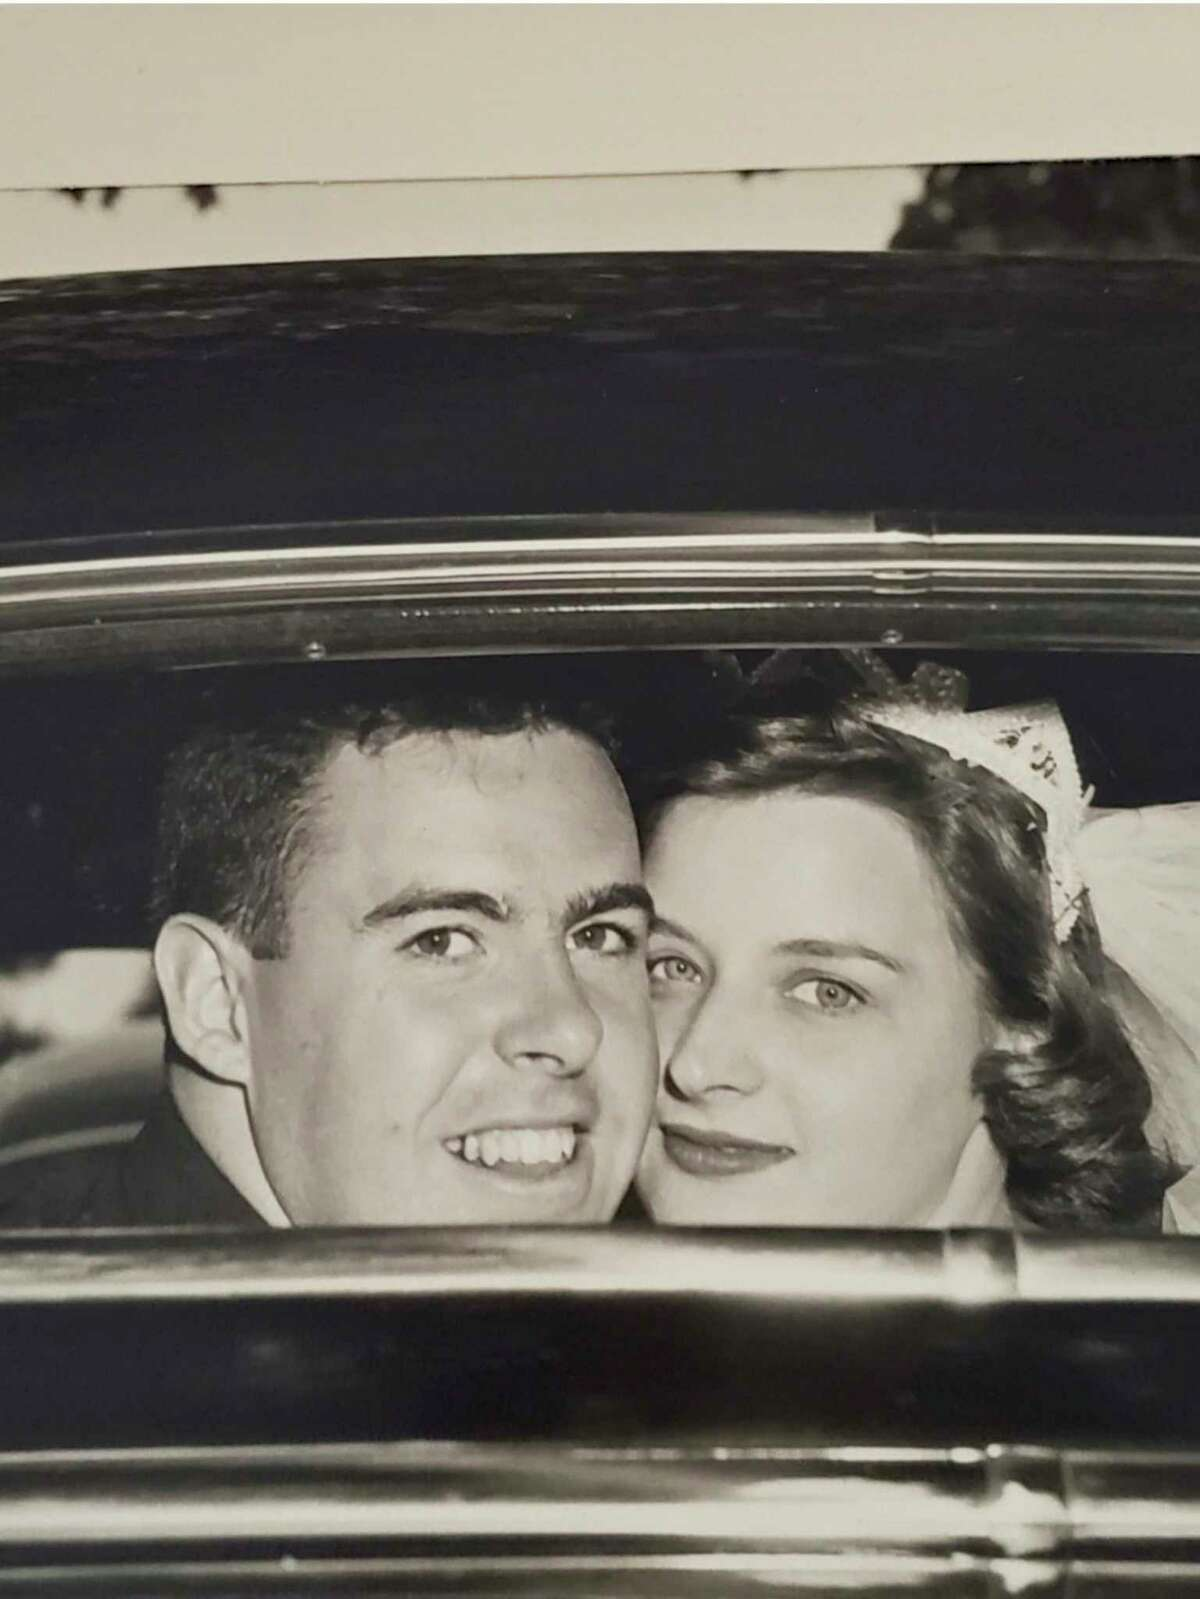 Ruth and Paul Whalen married in 1958 when she was 23 and he was 25. The two were high school sweethearts.